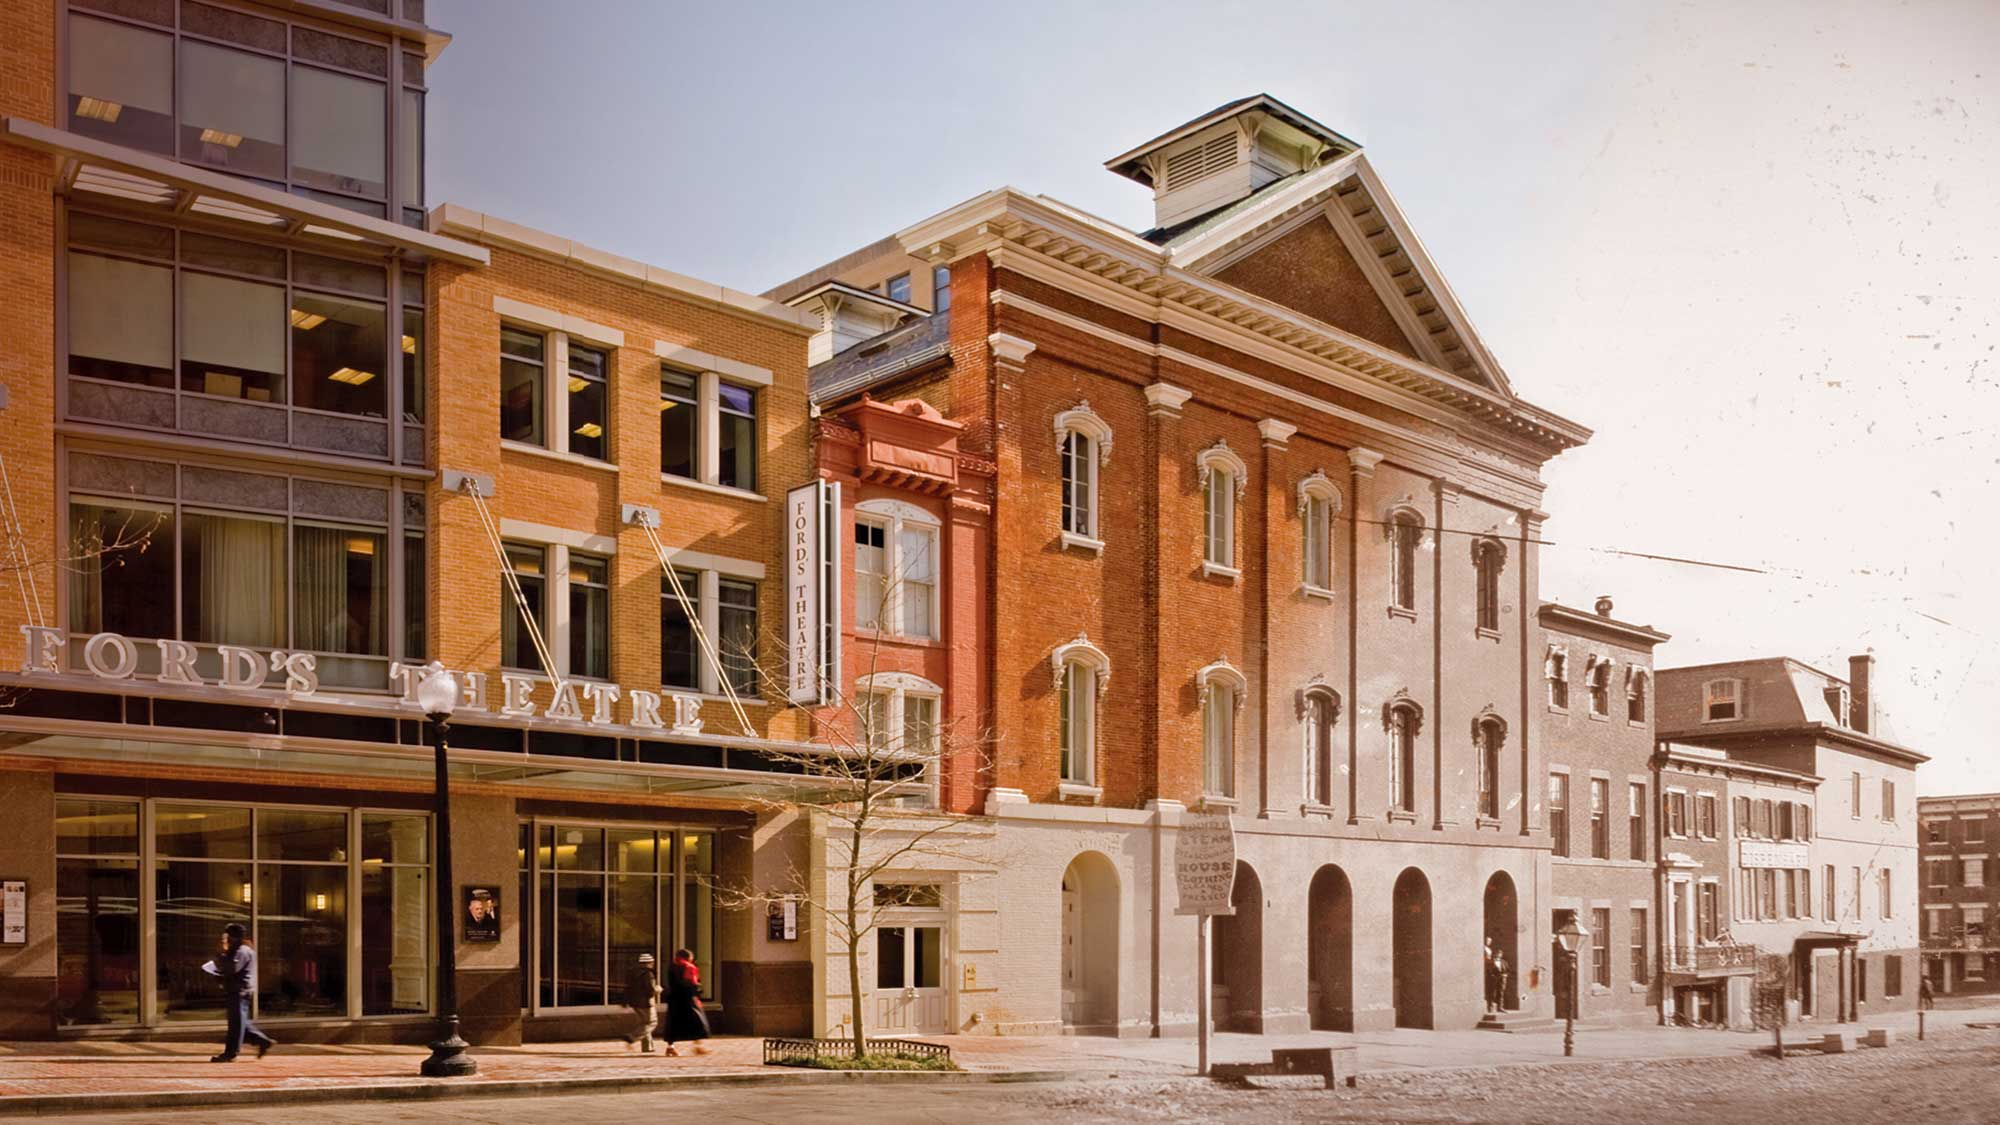 Photo of Tenth Street NW showing the facade of the new Ford's Theatre lobby entrance (2009) and a historic Ford's Theatre facade.